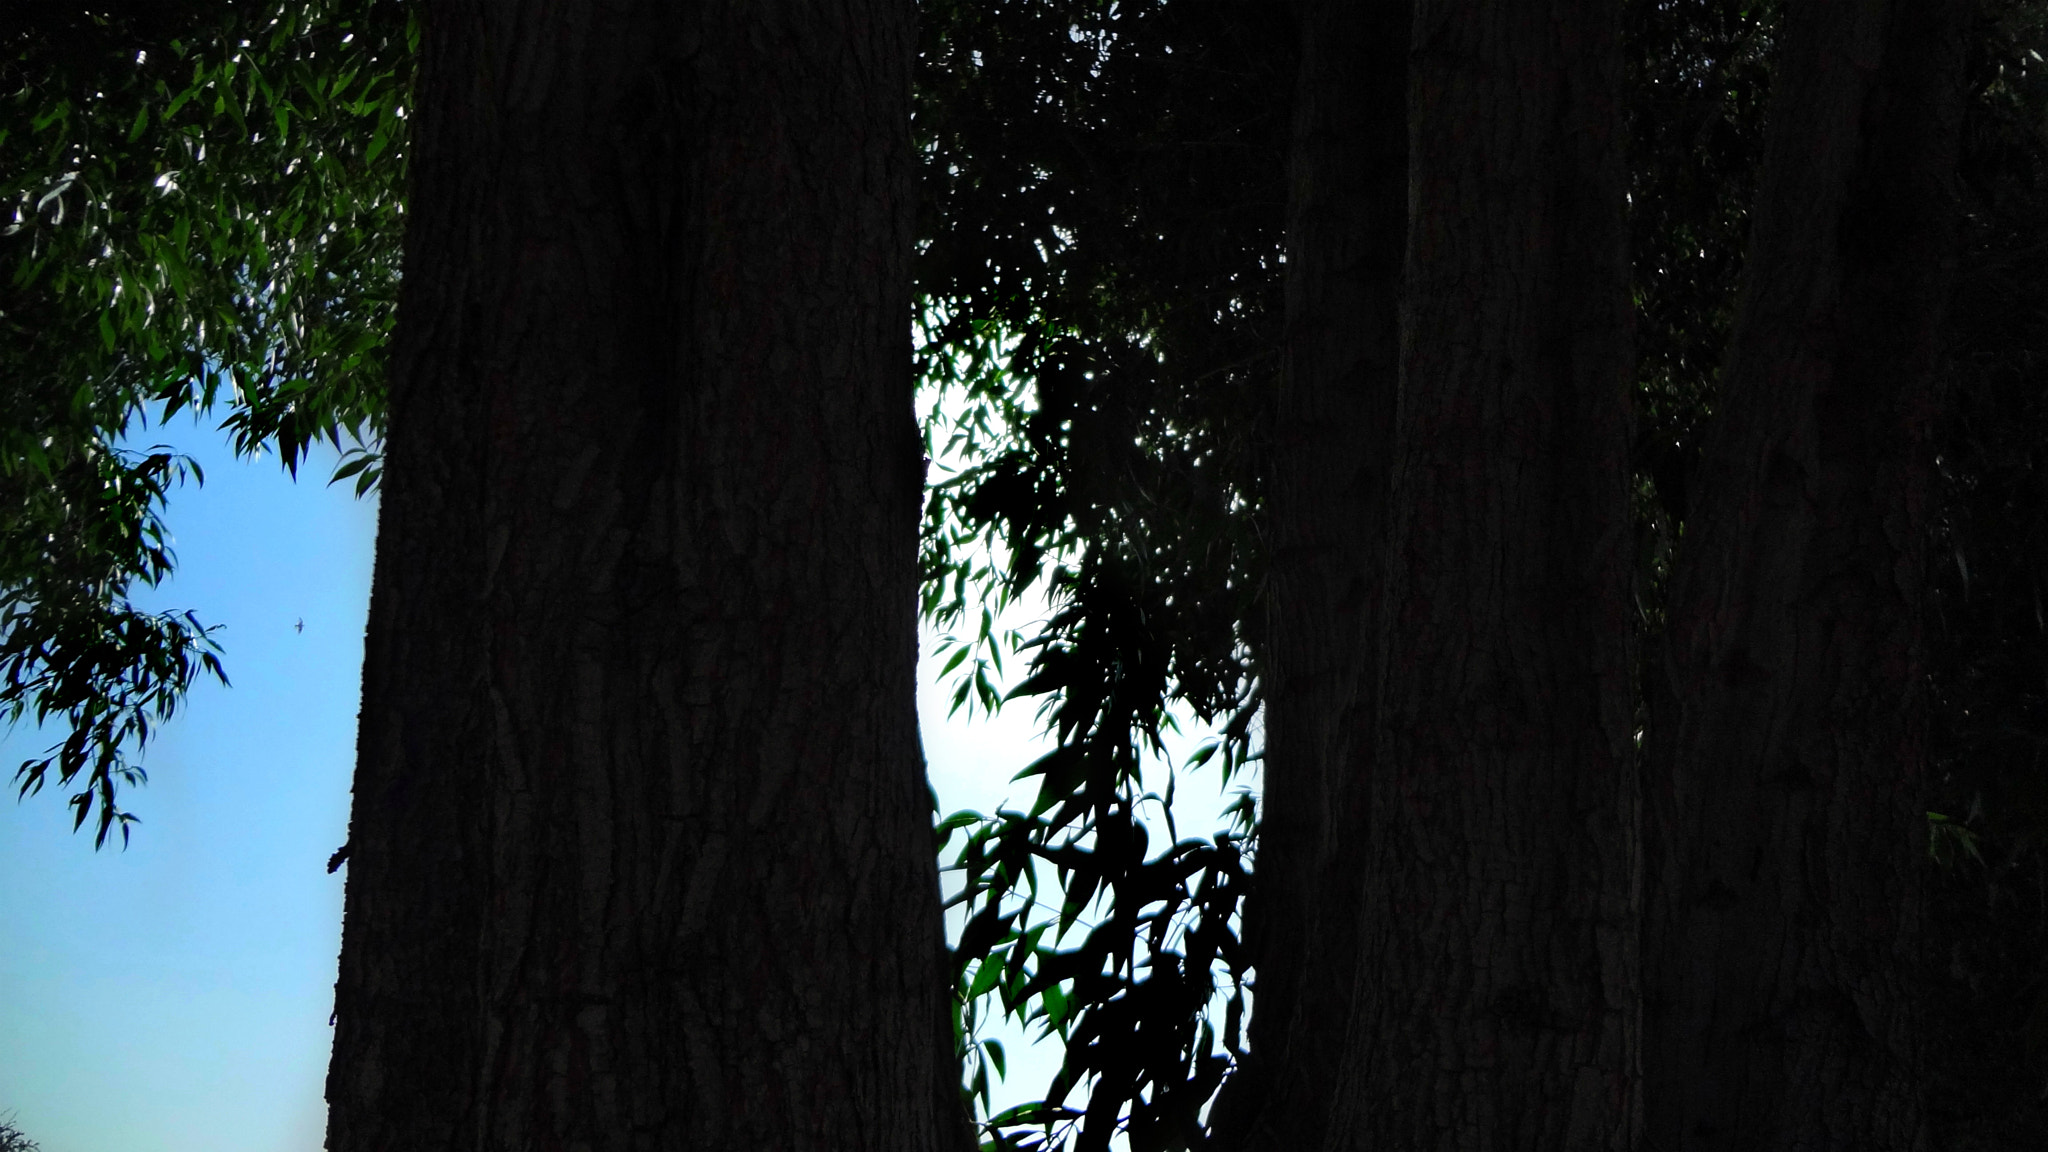 Photograph Forest by Basil Ben Varghese on 500px